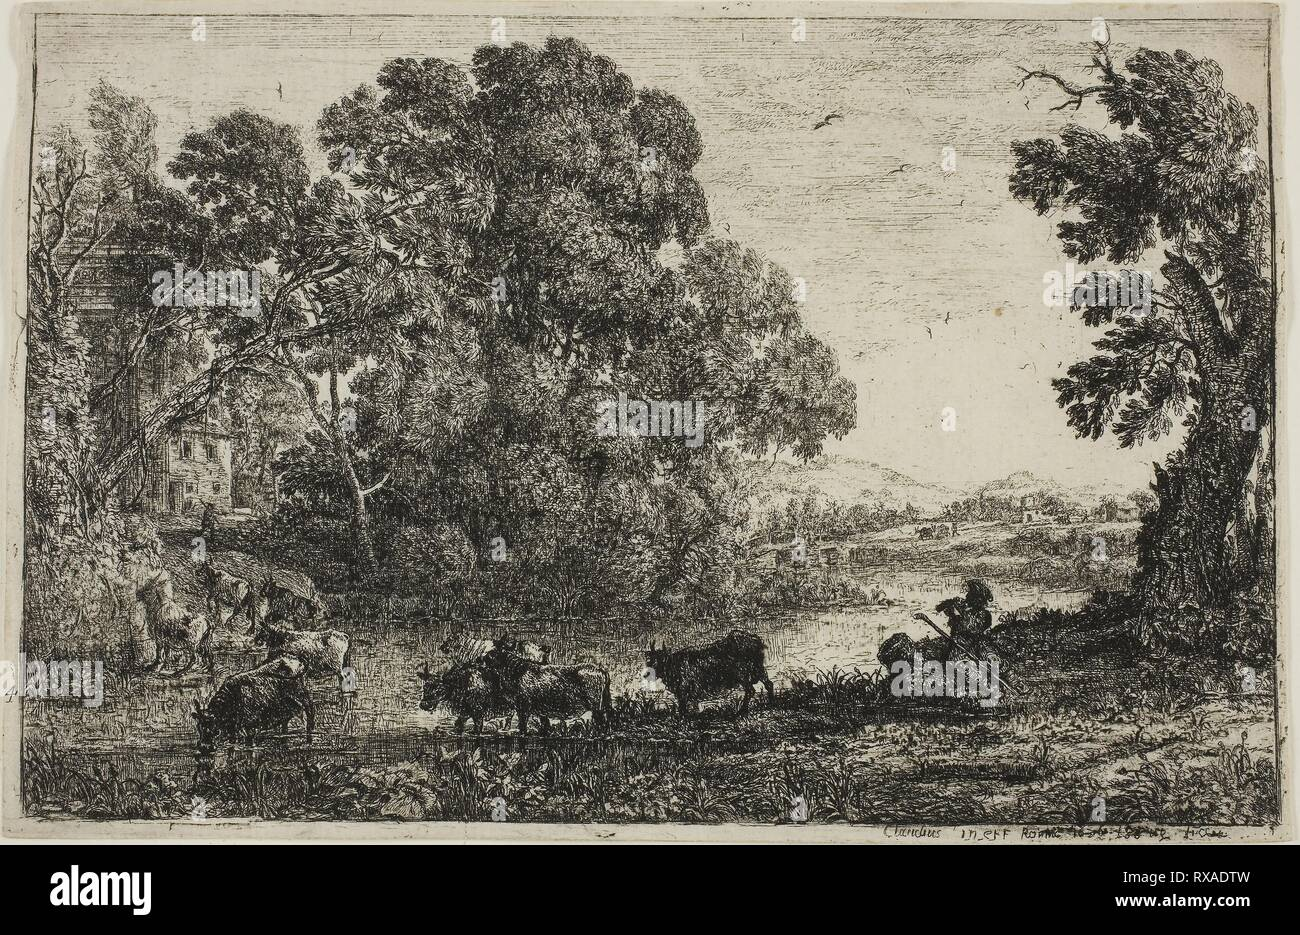 The Cowherd. Claude Lorrain; French, 1600-1682. Date: 1636. Dimensions: 126 × 195 mm (image); 131 × 201 mm (sheet, cut within platemark). Etching on ivory laid paper. Origin: France. Museum: The Chicago Art Institute. - Stock Image